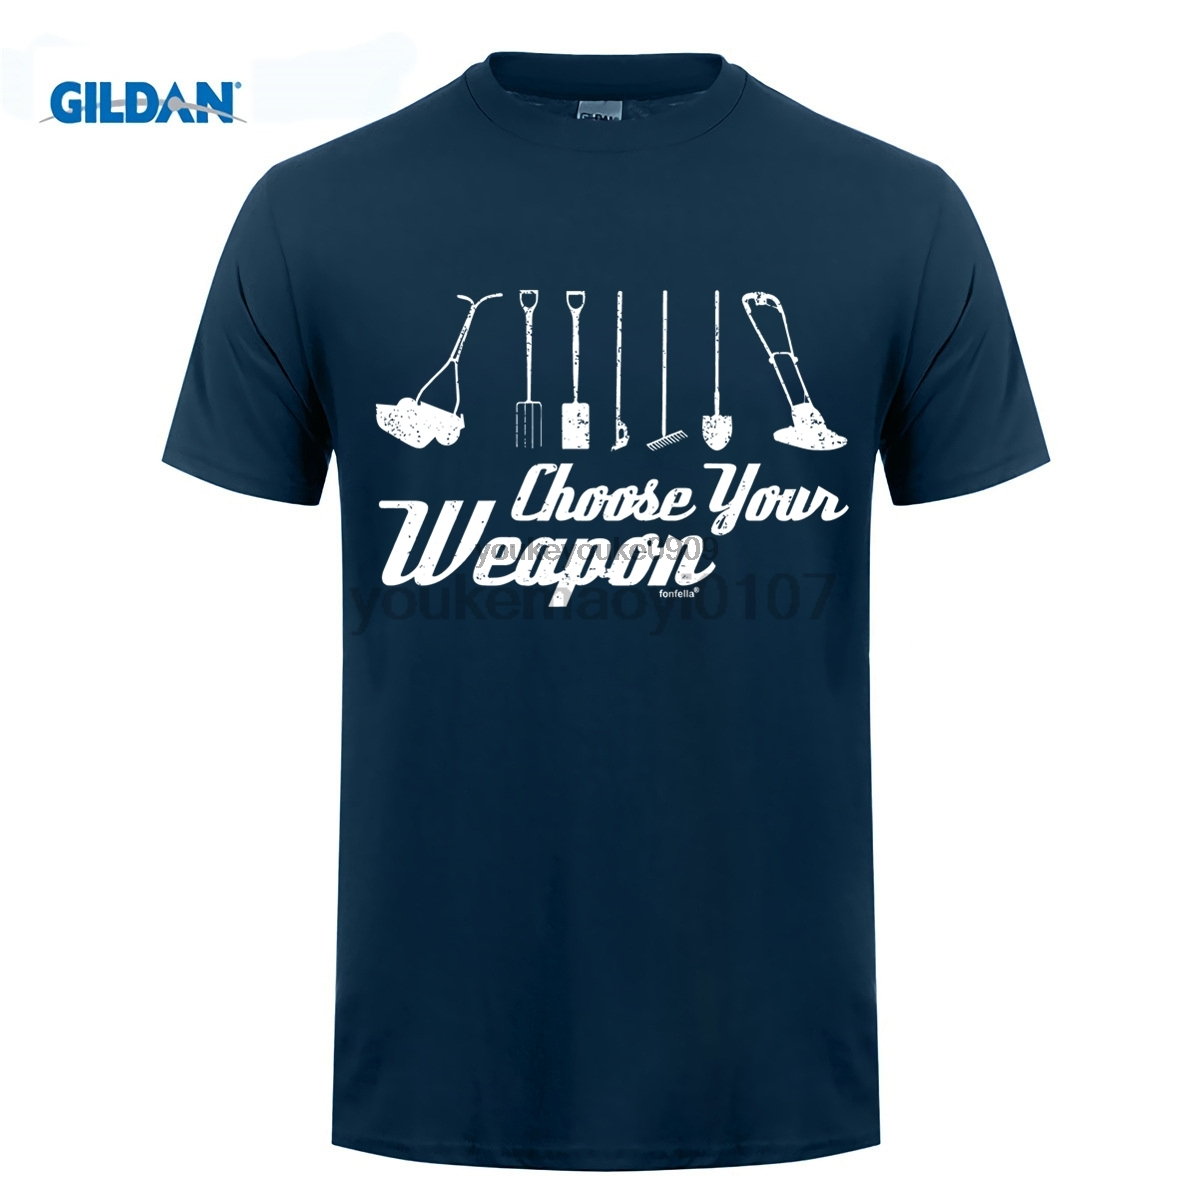 GILDAN Choose Your Weapon Gardner T-SHIRT Garden Tools Lawn Mower Funny Birthday Gift Su ...